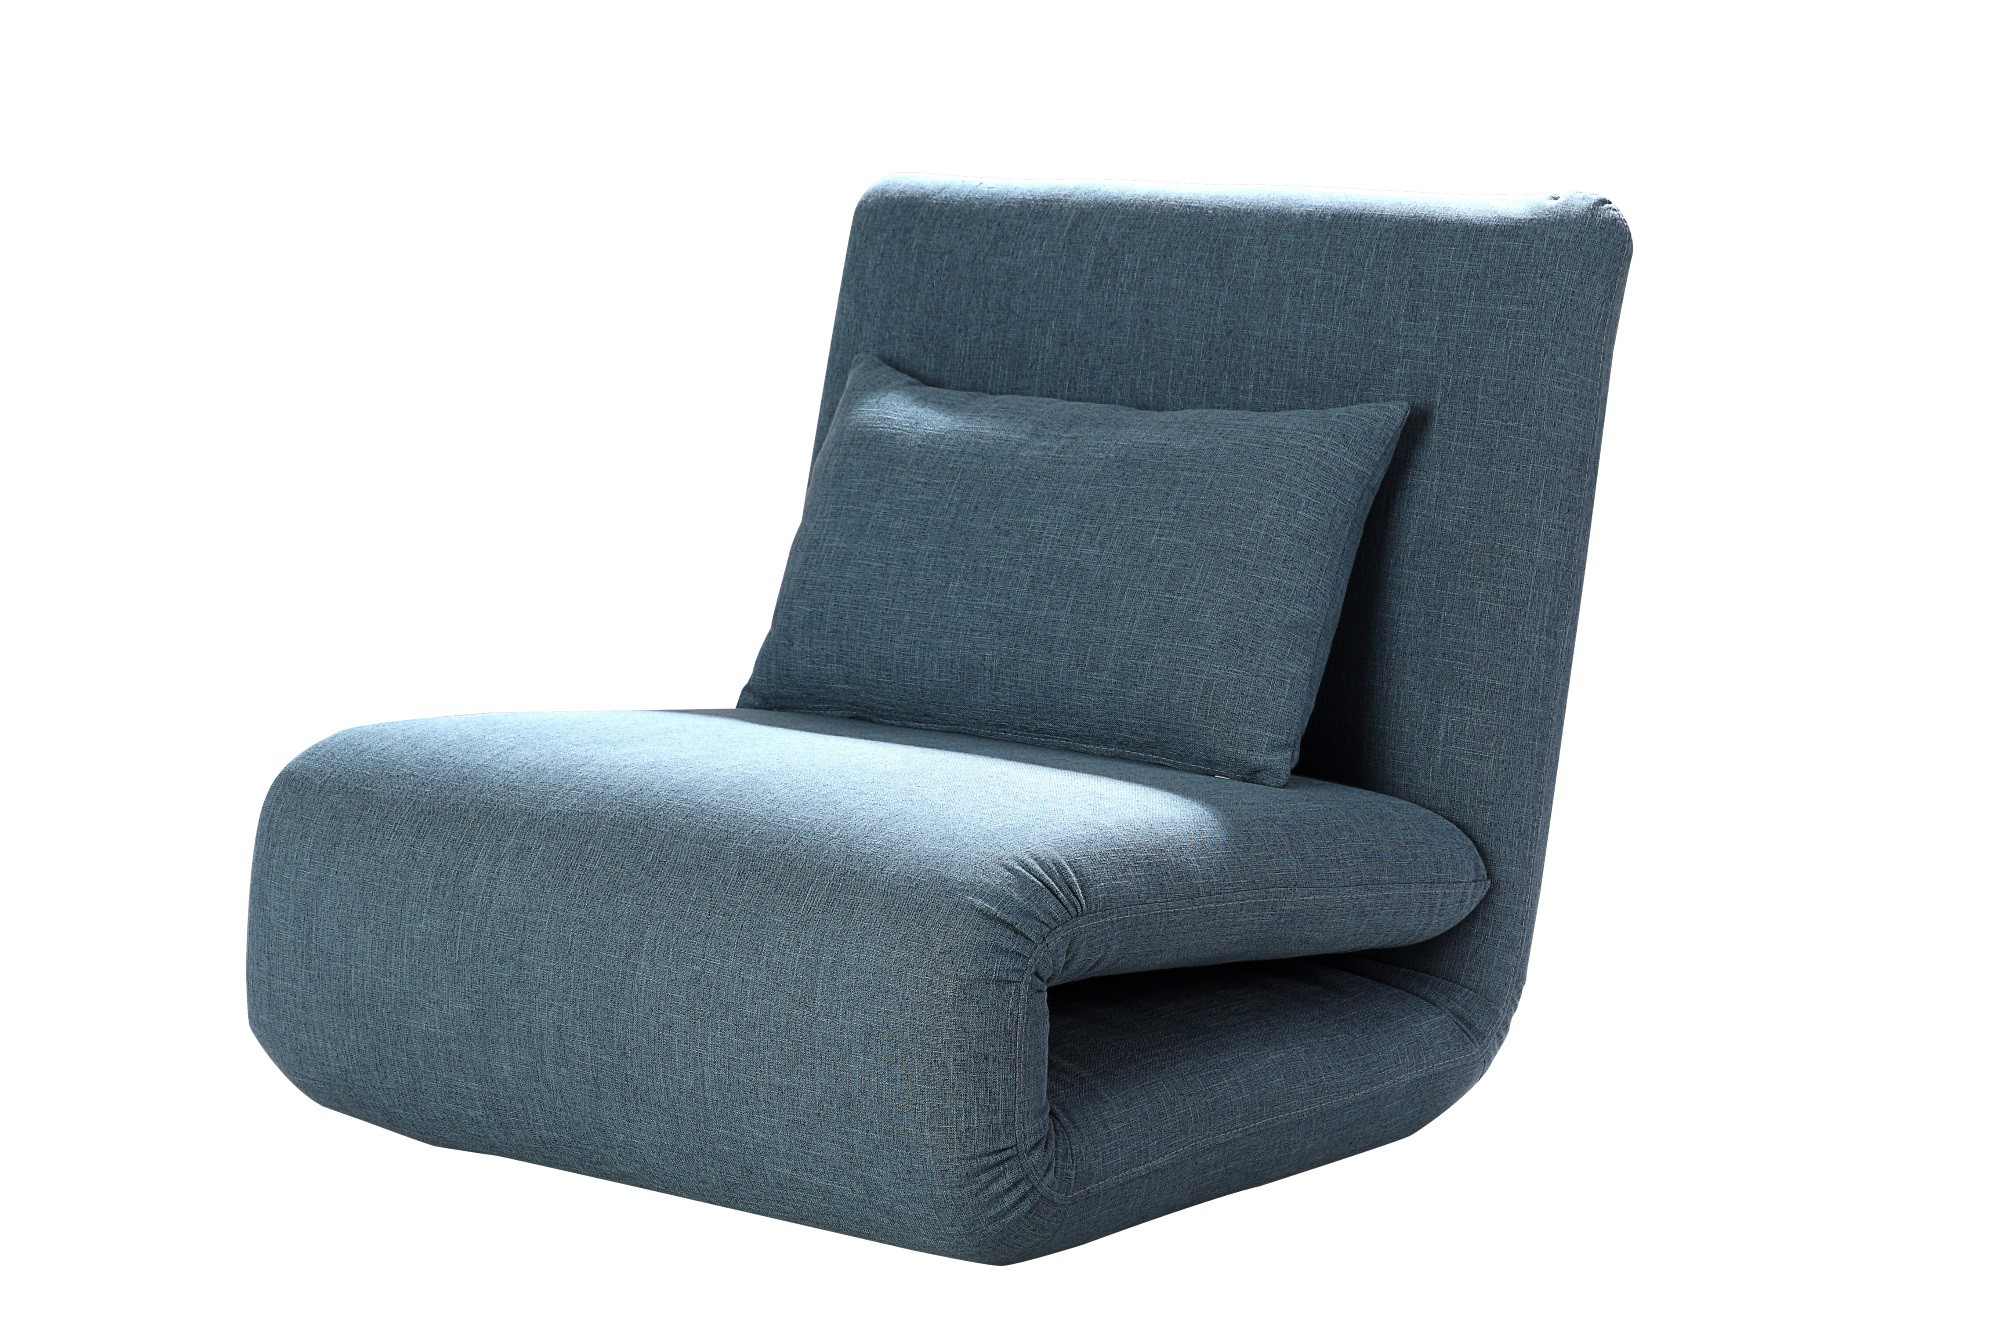 Alinea Fauteuil Convertible Canapé 1 Place Convertible But Royal Sofa Idée De